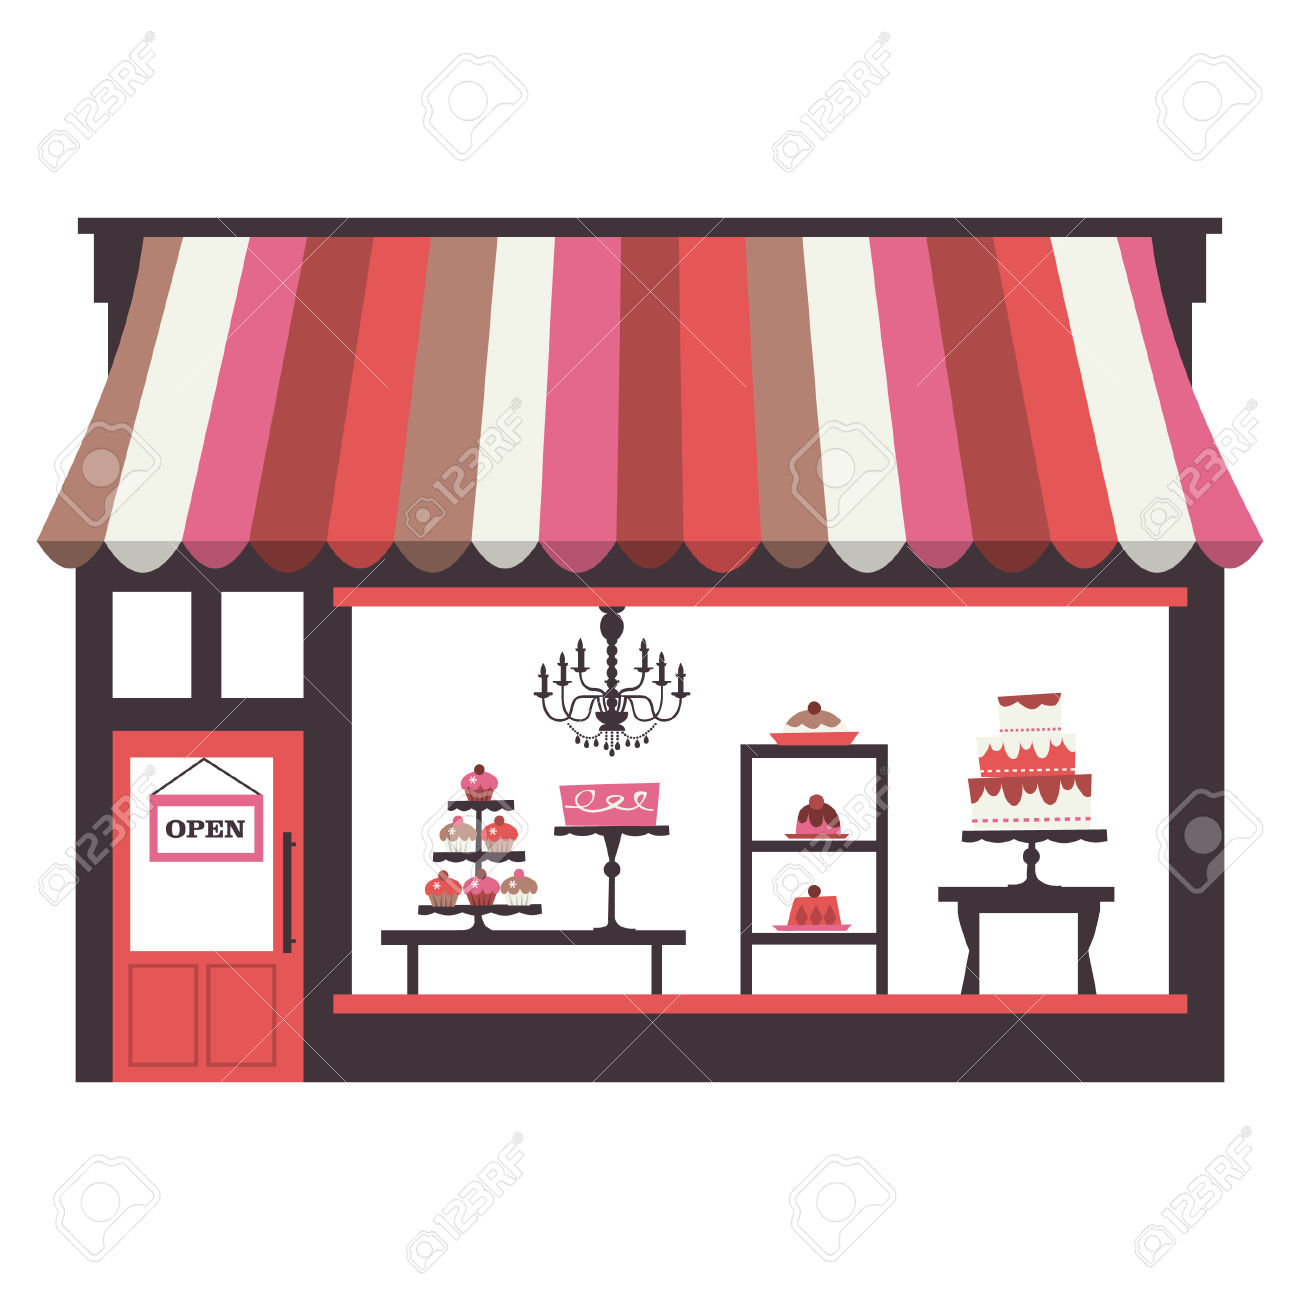 Bakery clipart bakery window. Building free download best